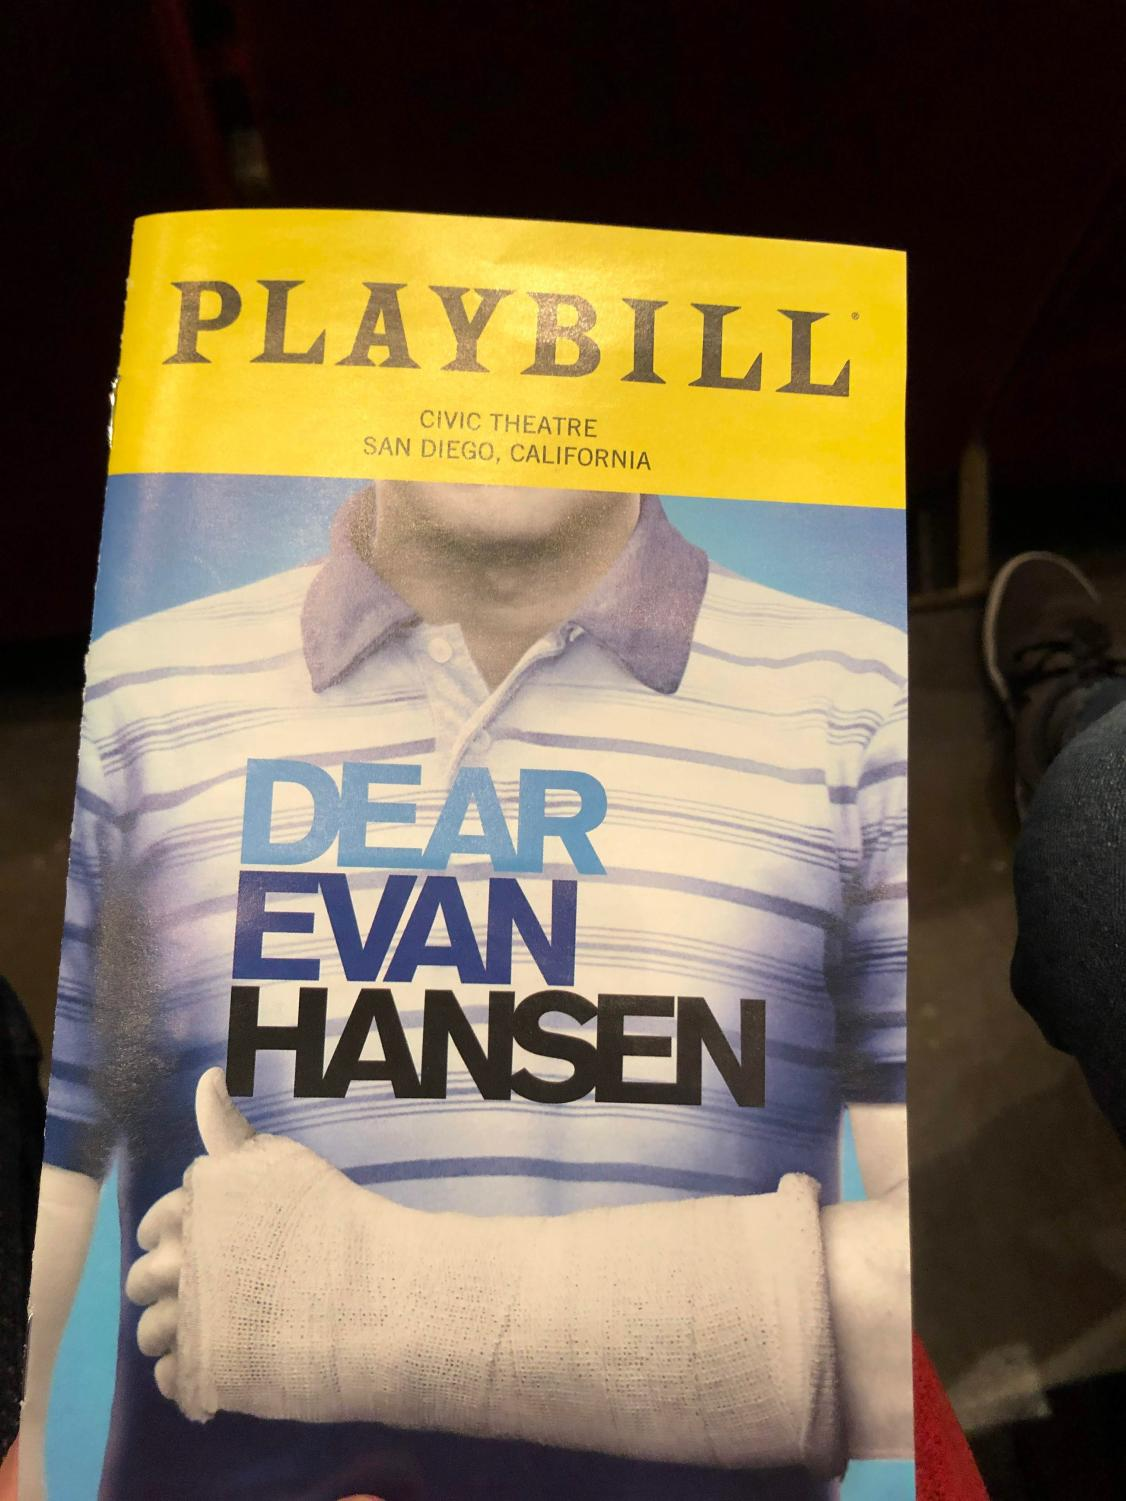 The Playbill of Dear Evan Hansen where I saw it.  Even the outfit depicted on the Playbill carries heavy symbolism which becomes evident after seeing the musical.